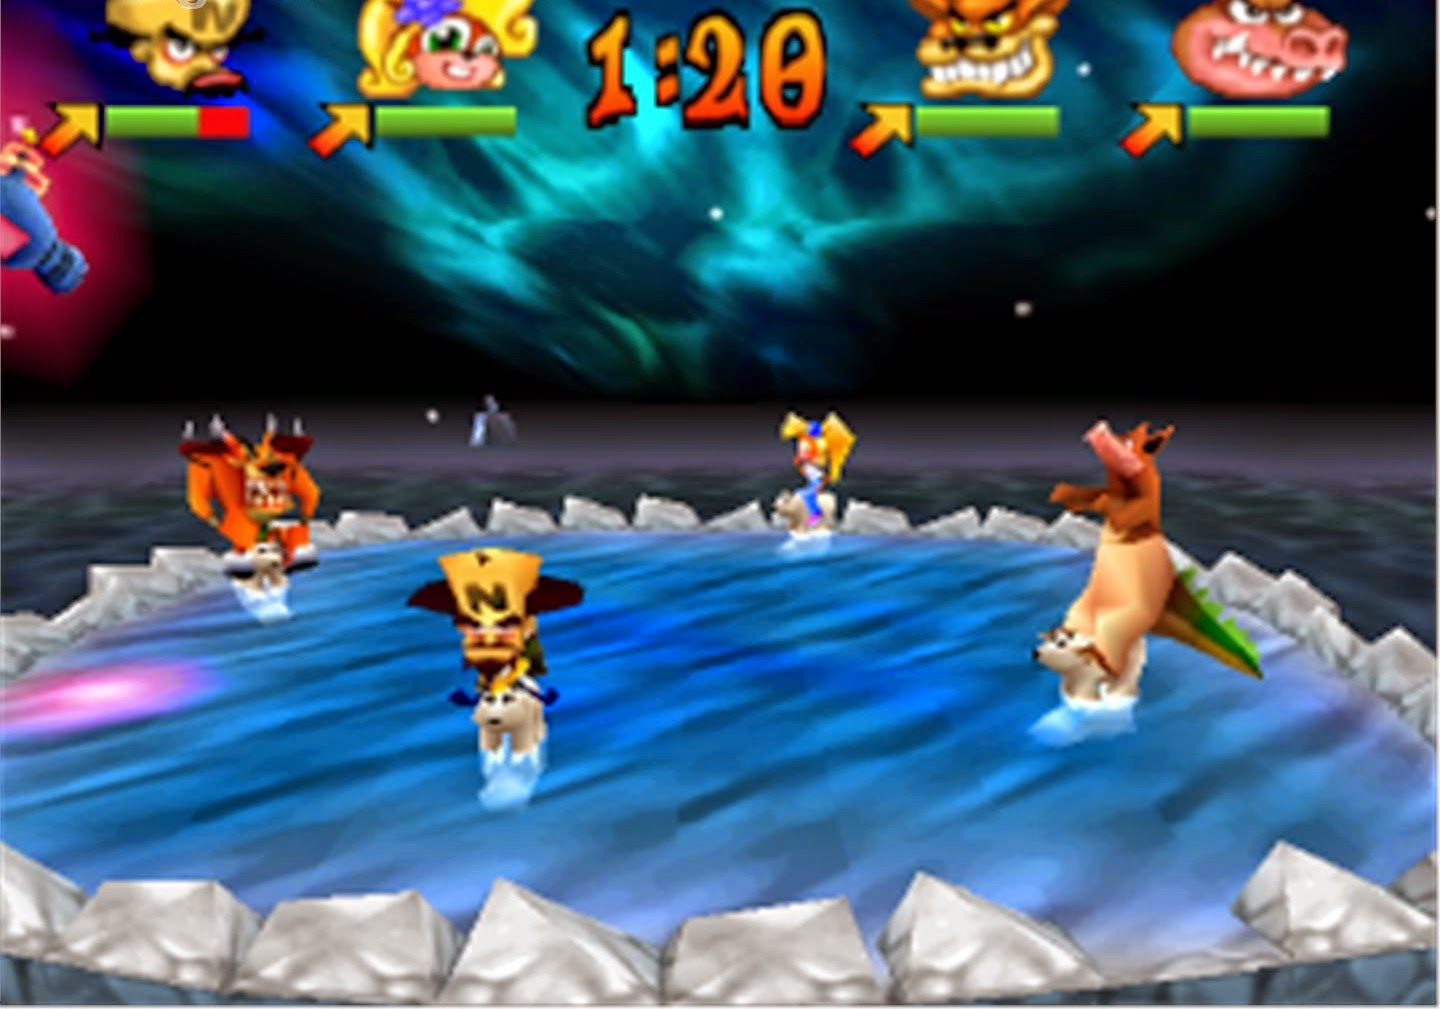 Crash bash game free download full version for pc